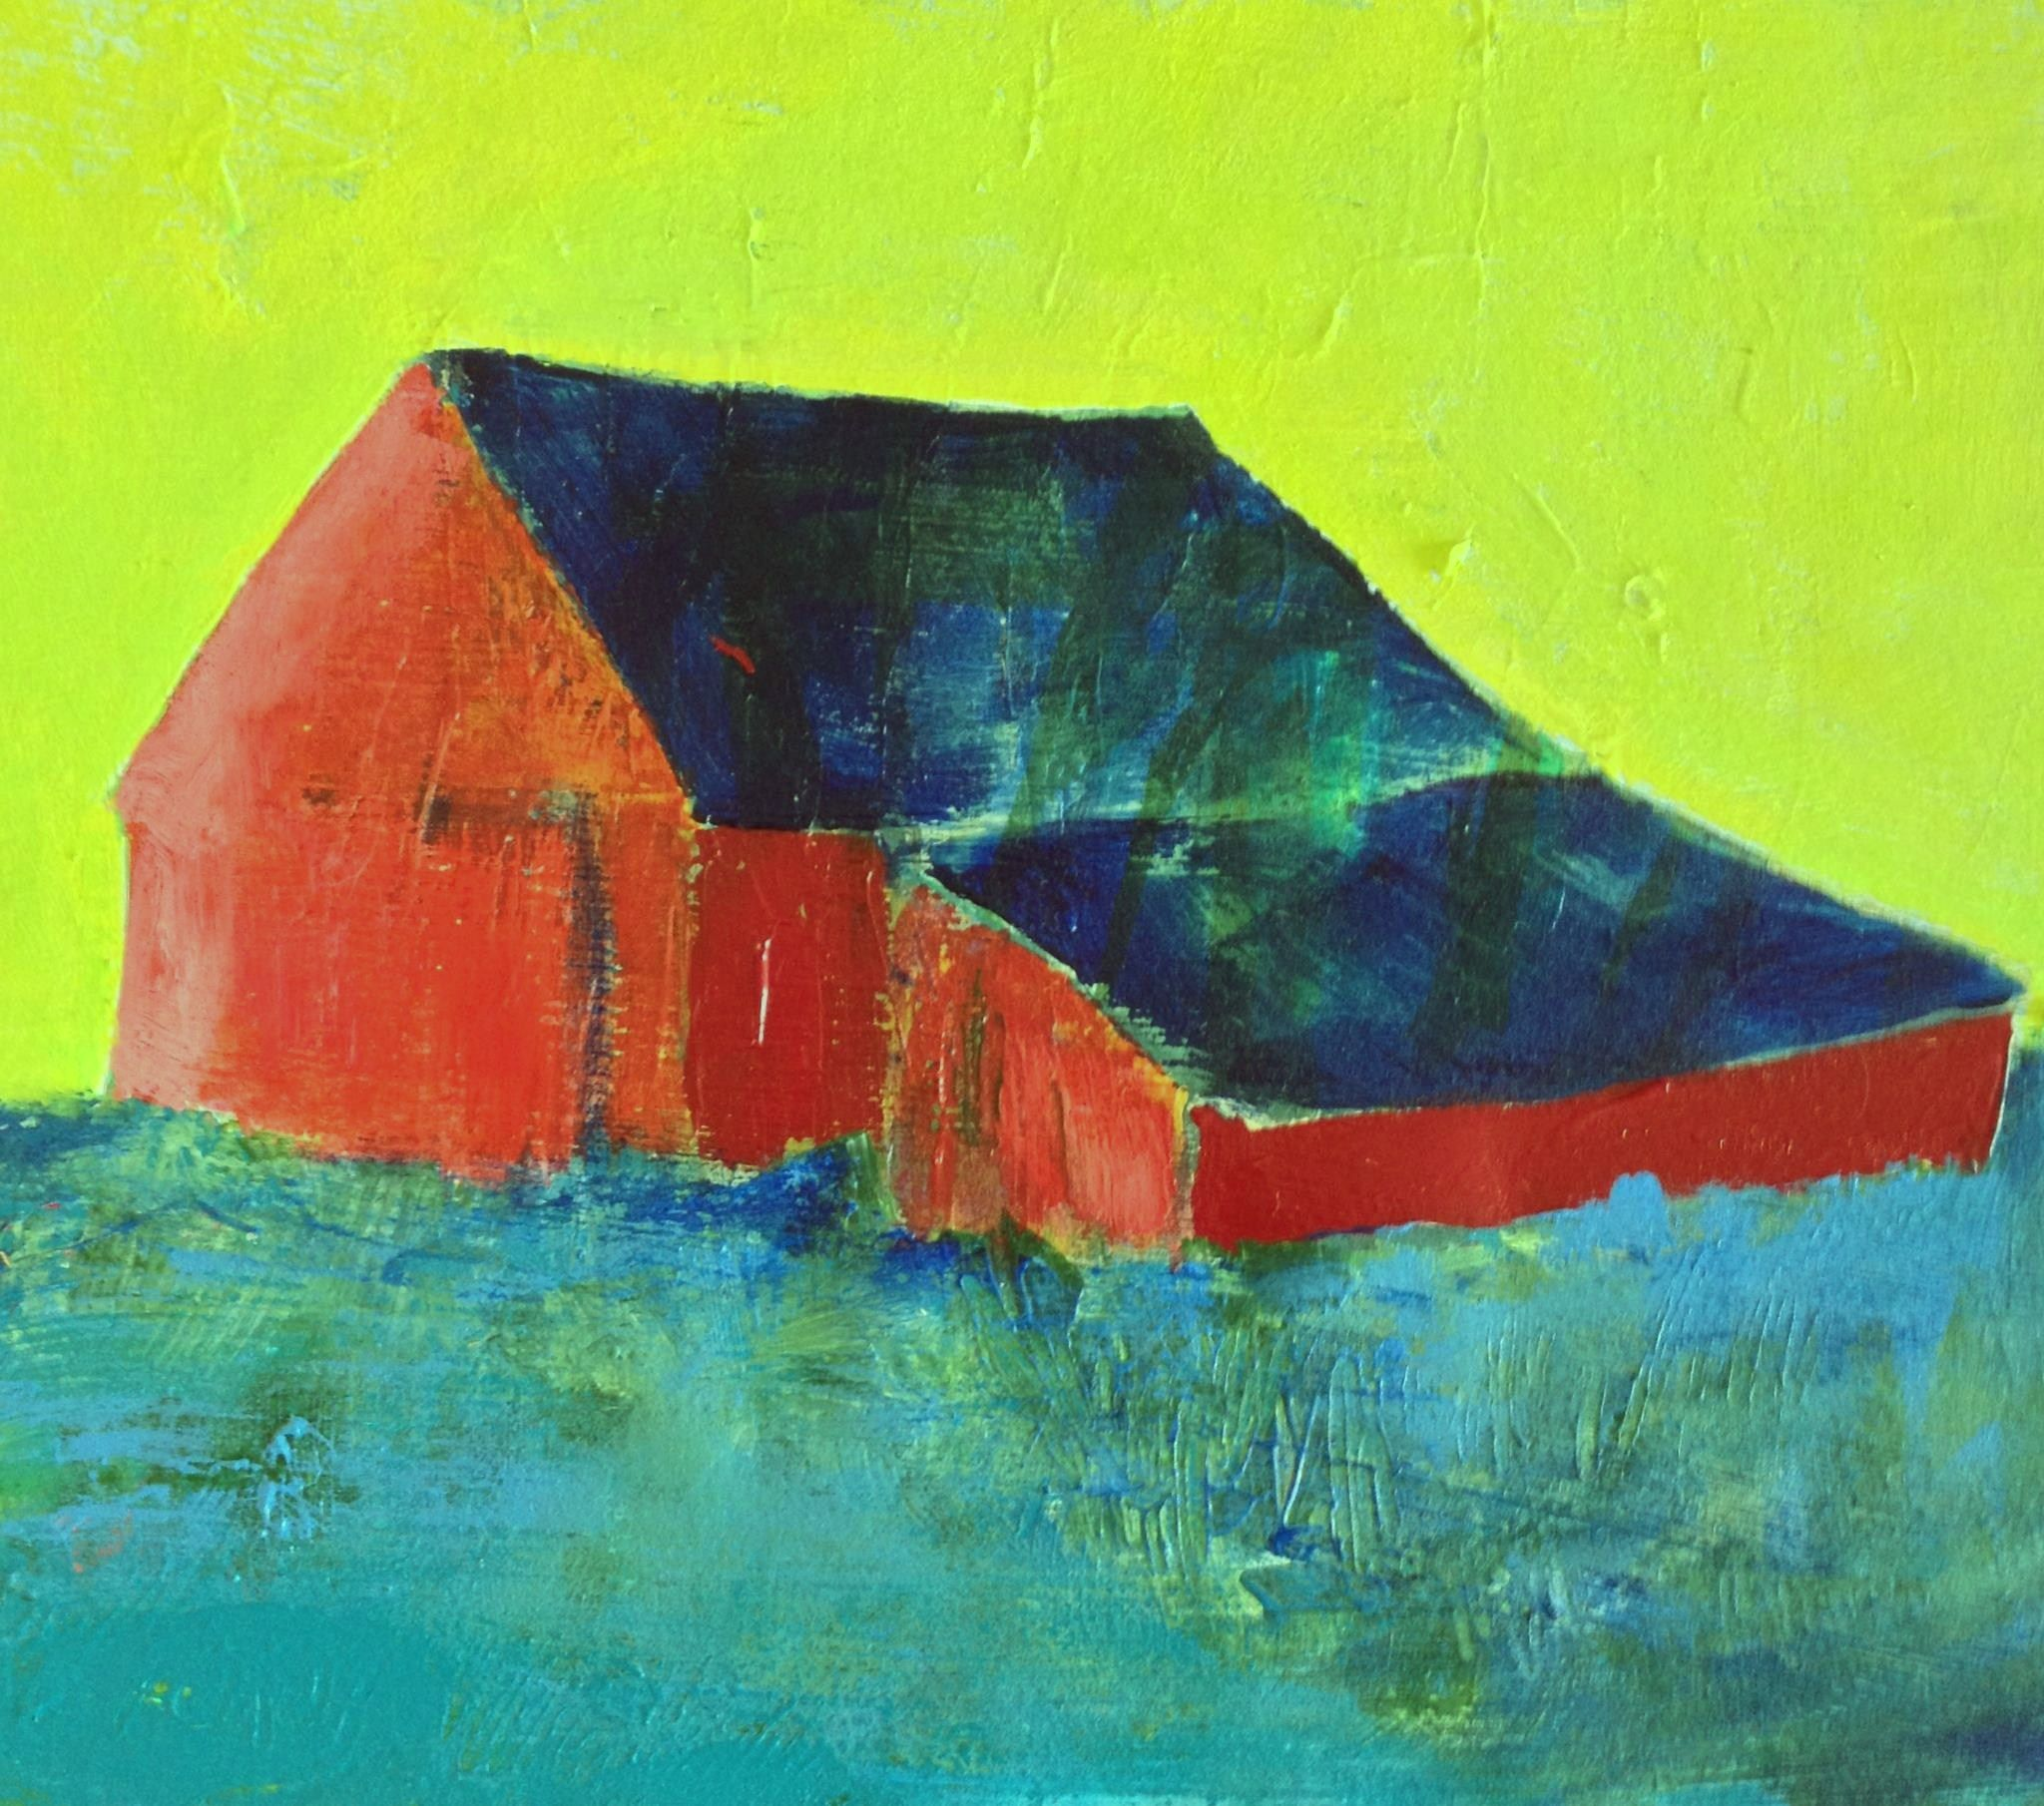 Dolly's Barn The Grass is Blue... original painting  at poroyart.com